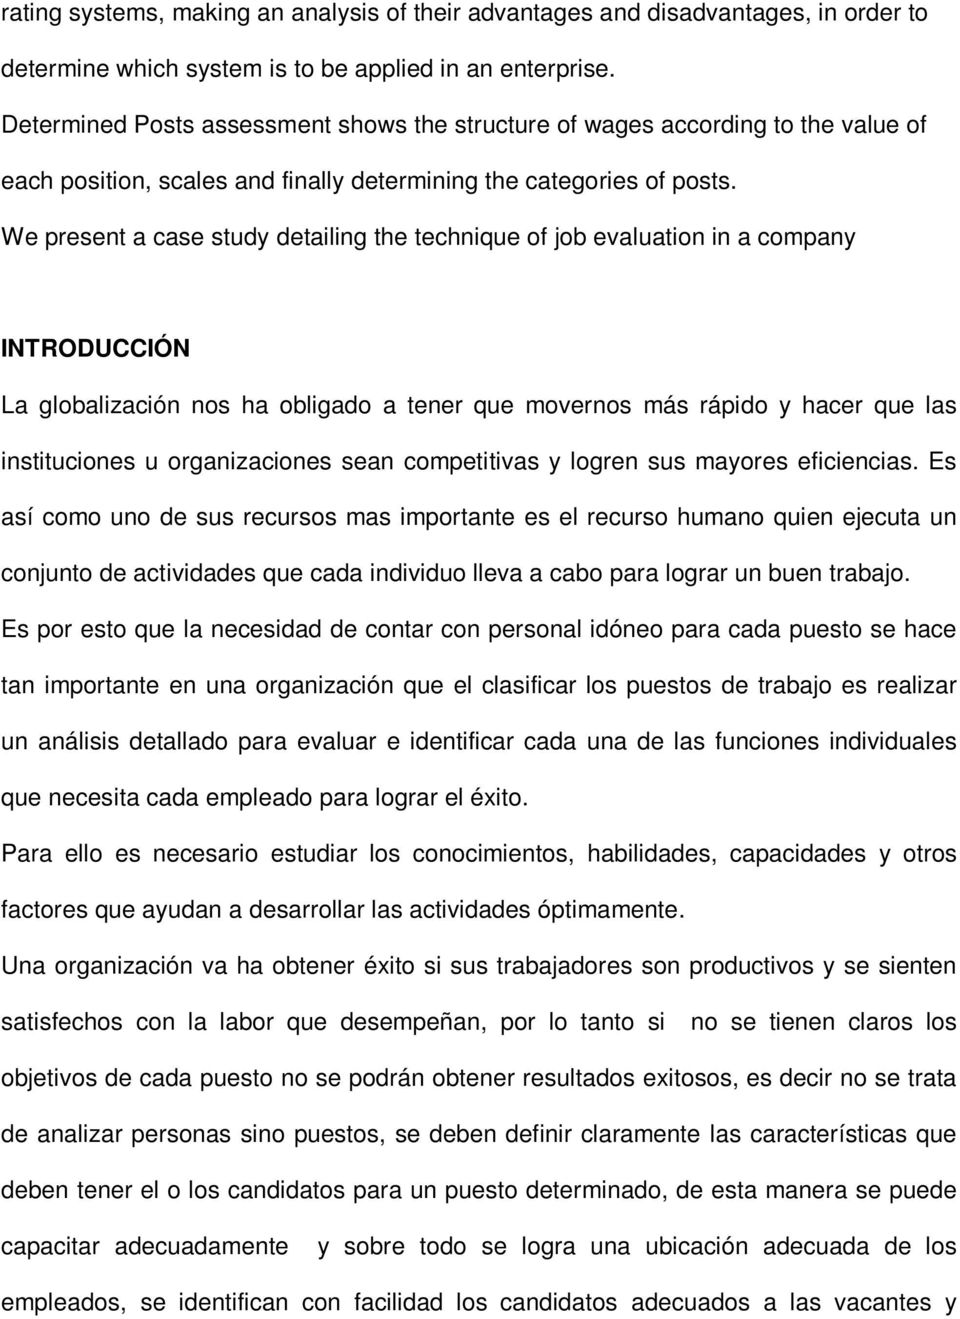 We present a case study detailing the technique of job evaluation in a company INTRODUCCIÓN La globalización nos ha obligado a tener que movernos más rápido y hacer que las instituciones u